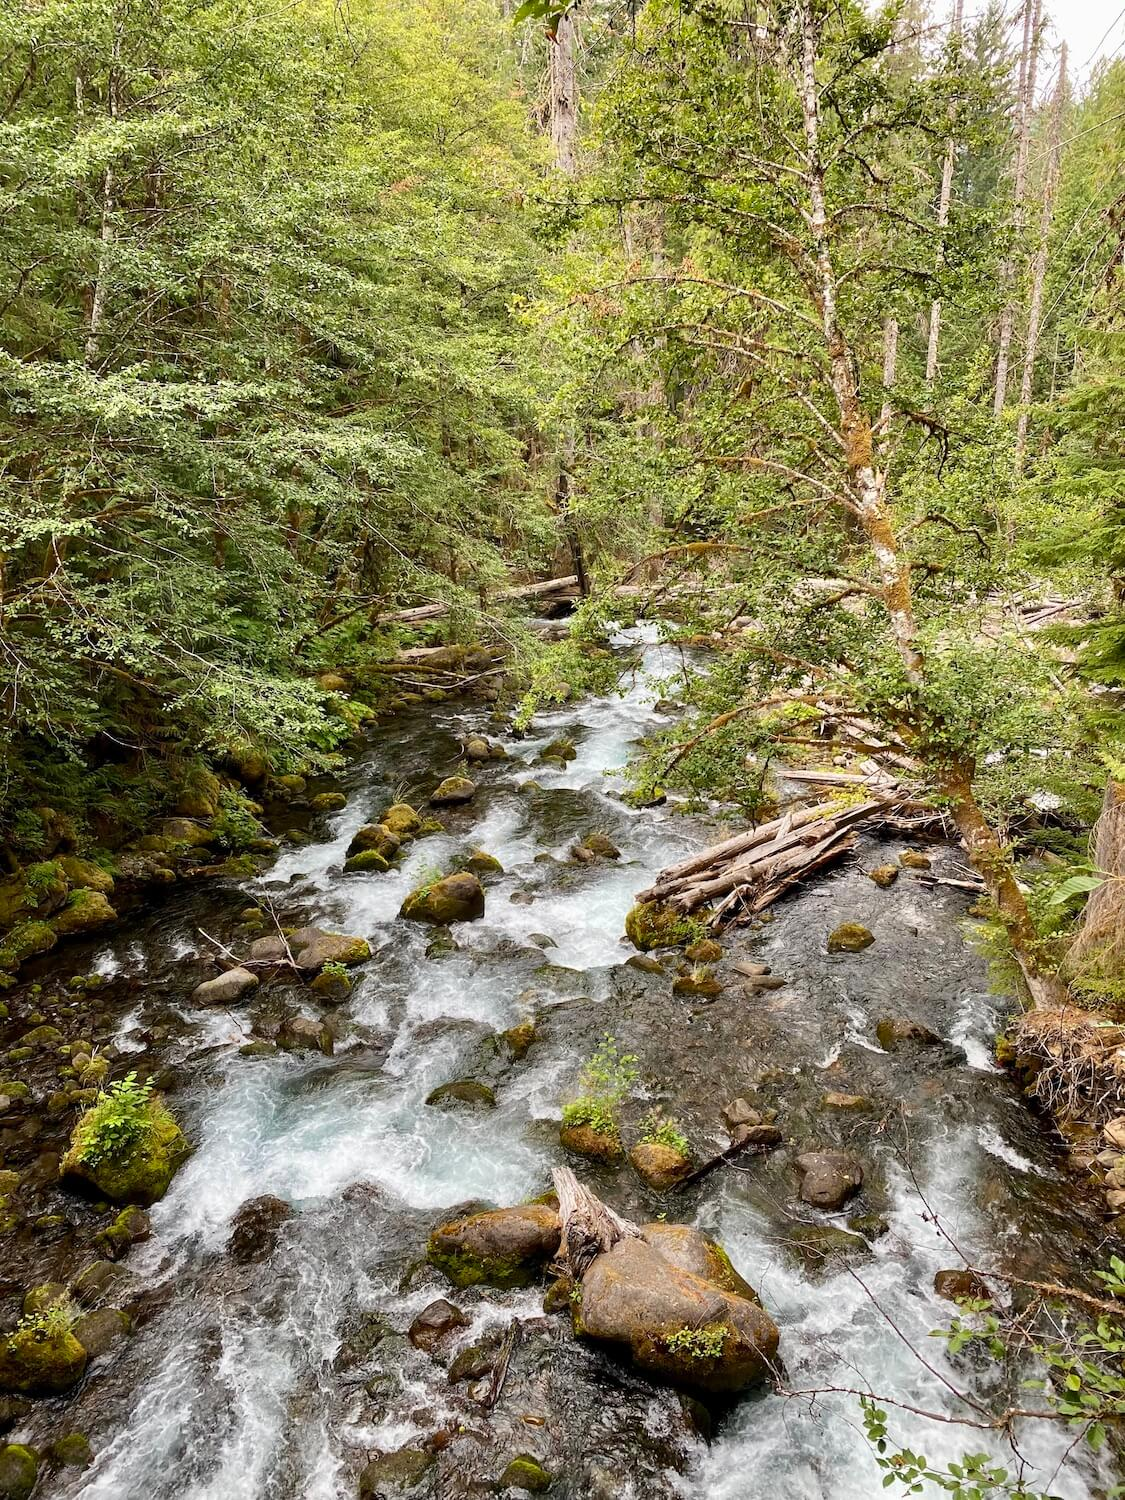 A flowing creek works its way through the Lewis River Recreation Area. There are a number of fir and birch trees hanging over the rushing water.